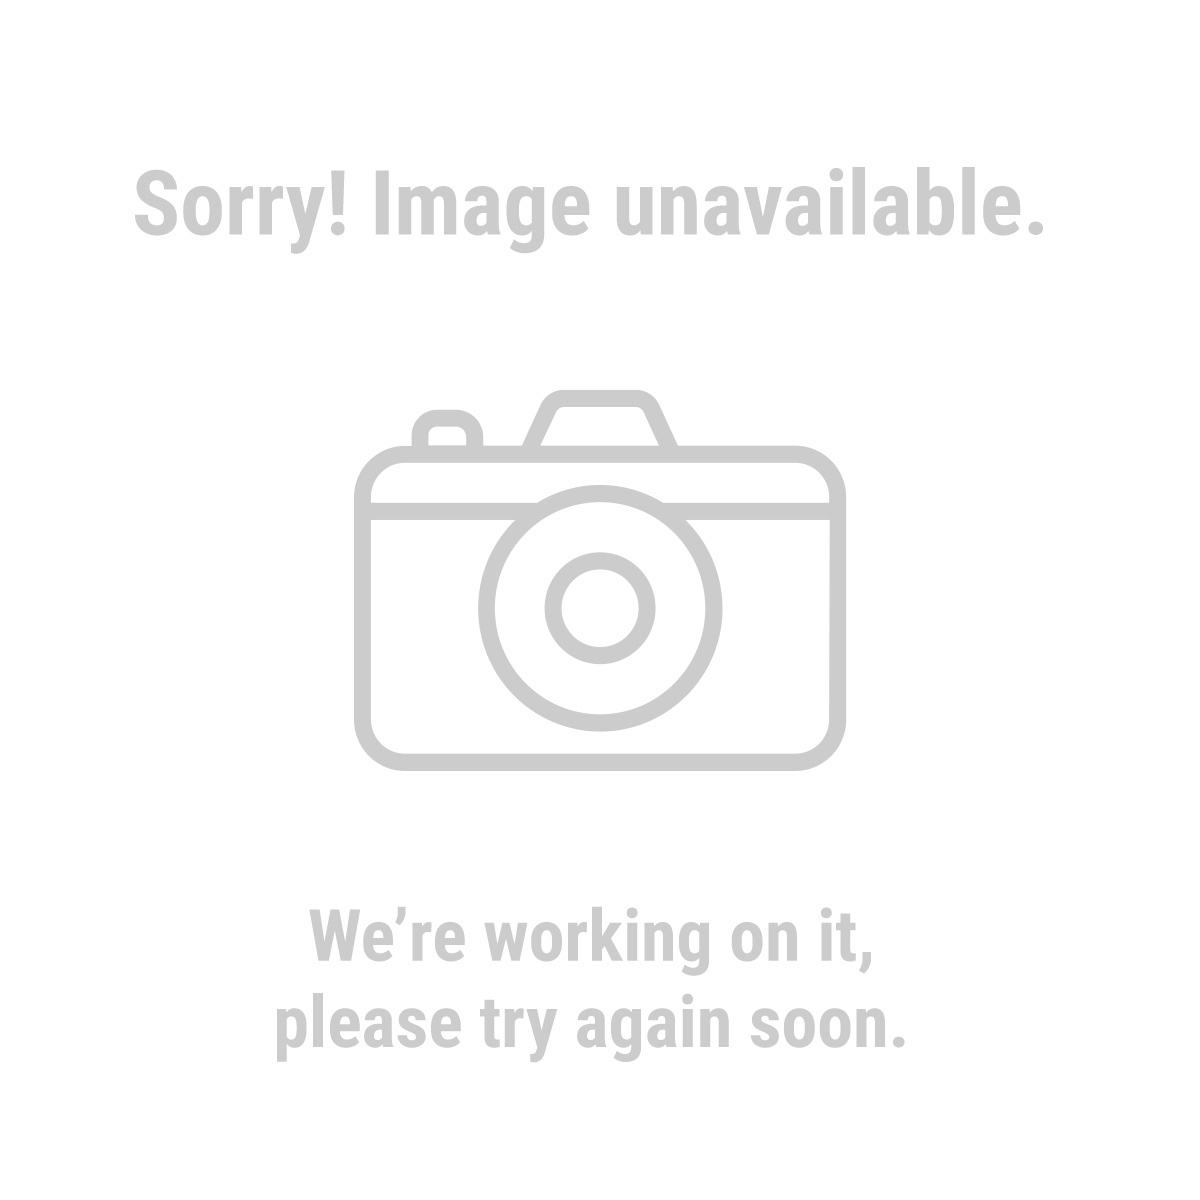 Central-Machinery 60238 5 Speed Bench Drill Press